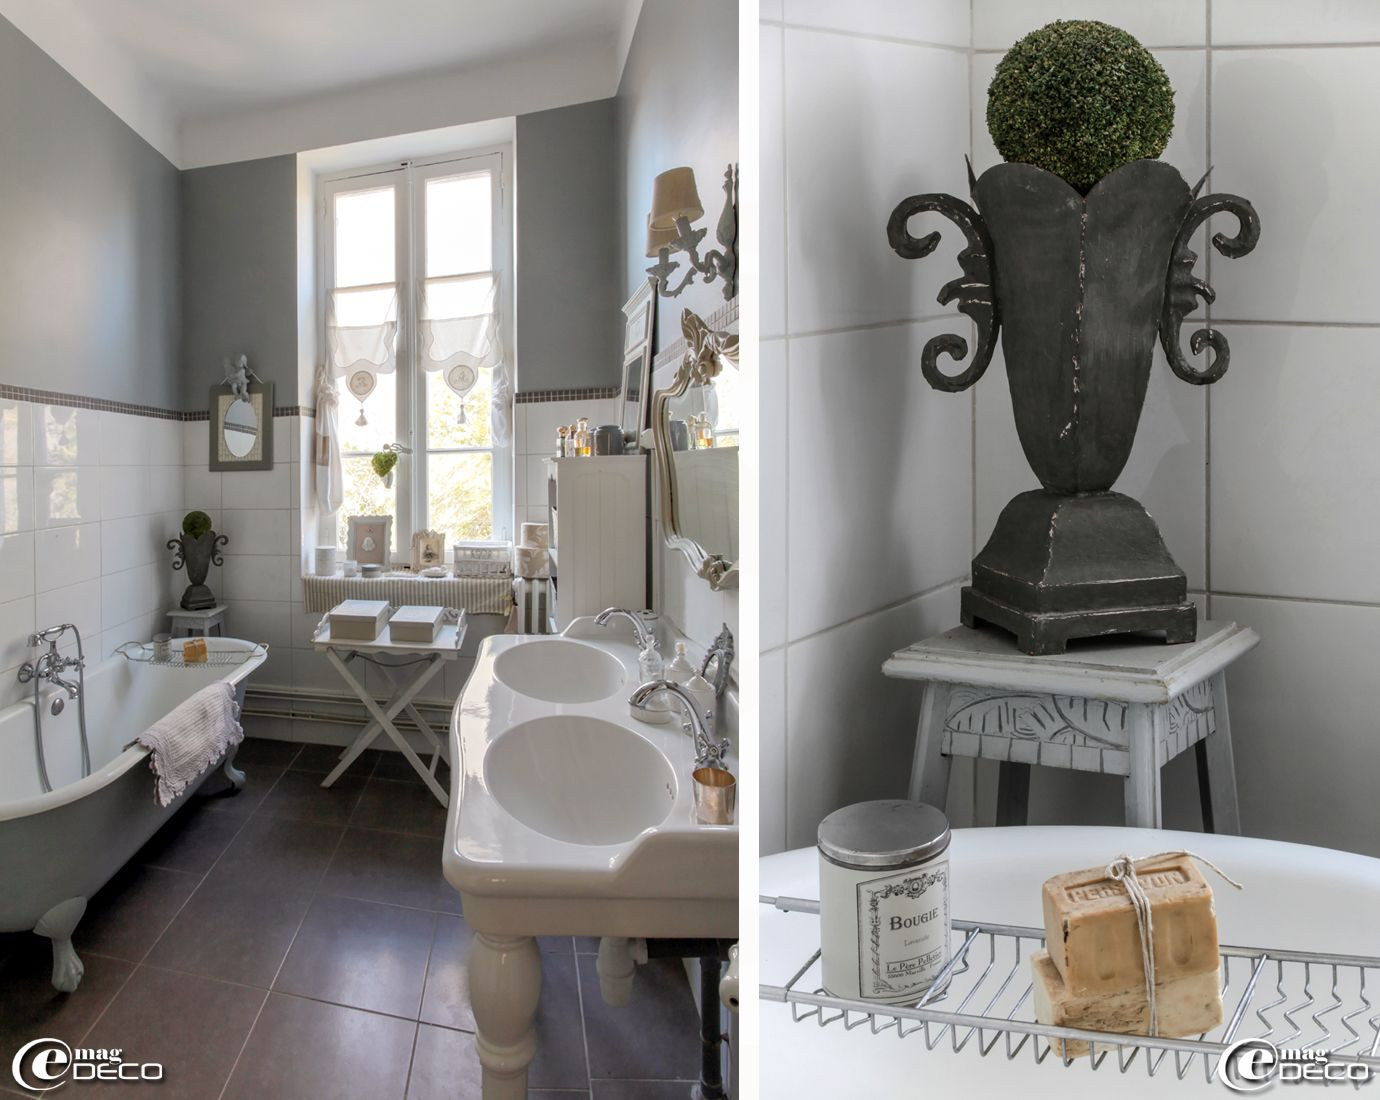 cast iron bathtub with legs painted gray mottled and double basin on column leroy merlin dream. Black Bedroom Furniture Sets. Home Design Ideas